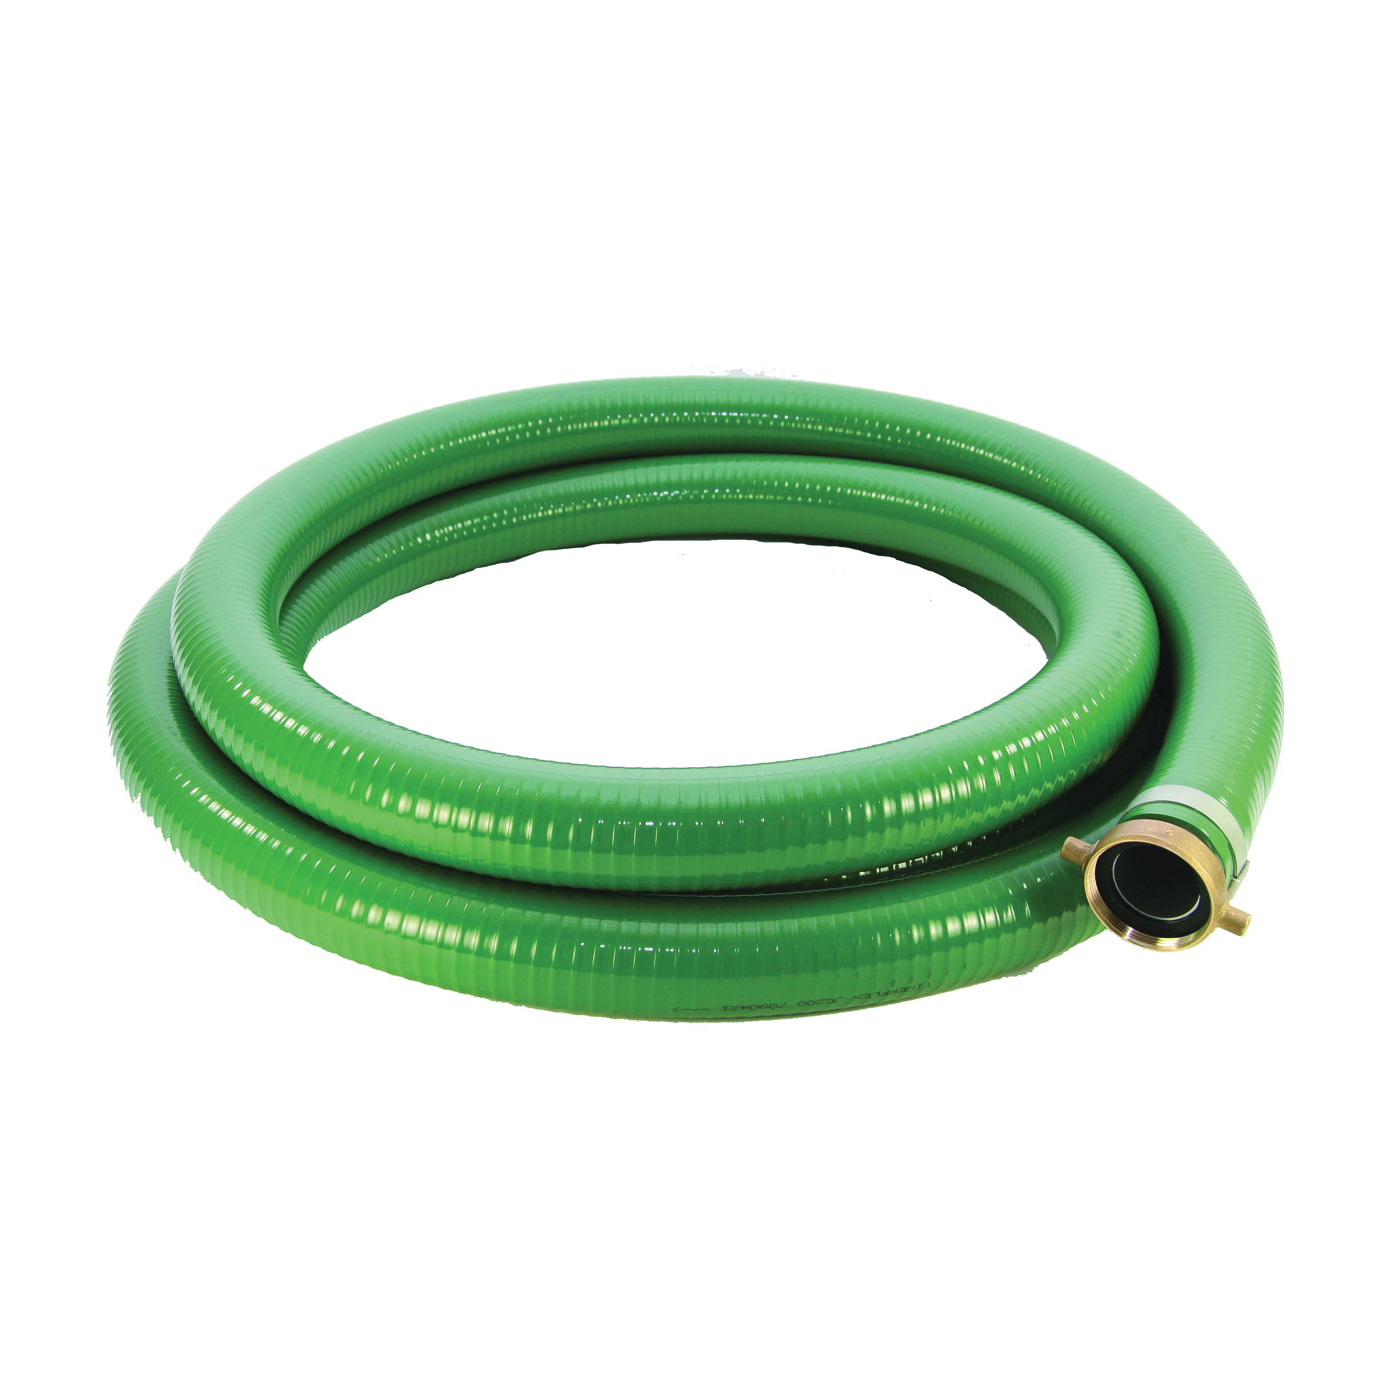 Picture of ABBOTT RUBBER 1240-3000-20 Suction Hose, 3 in ID, 20 ft L, Male Thread x Female, PVC